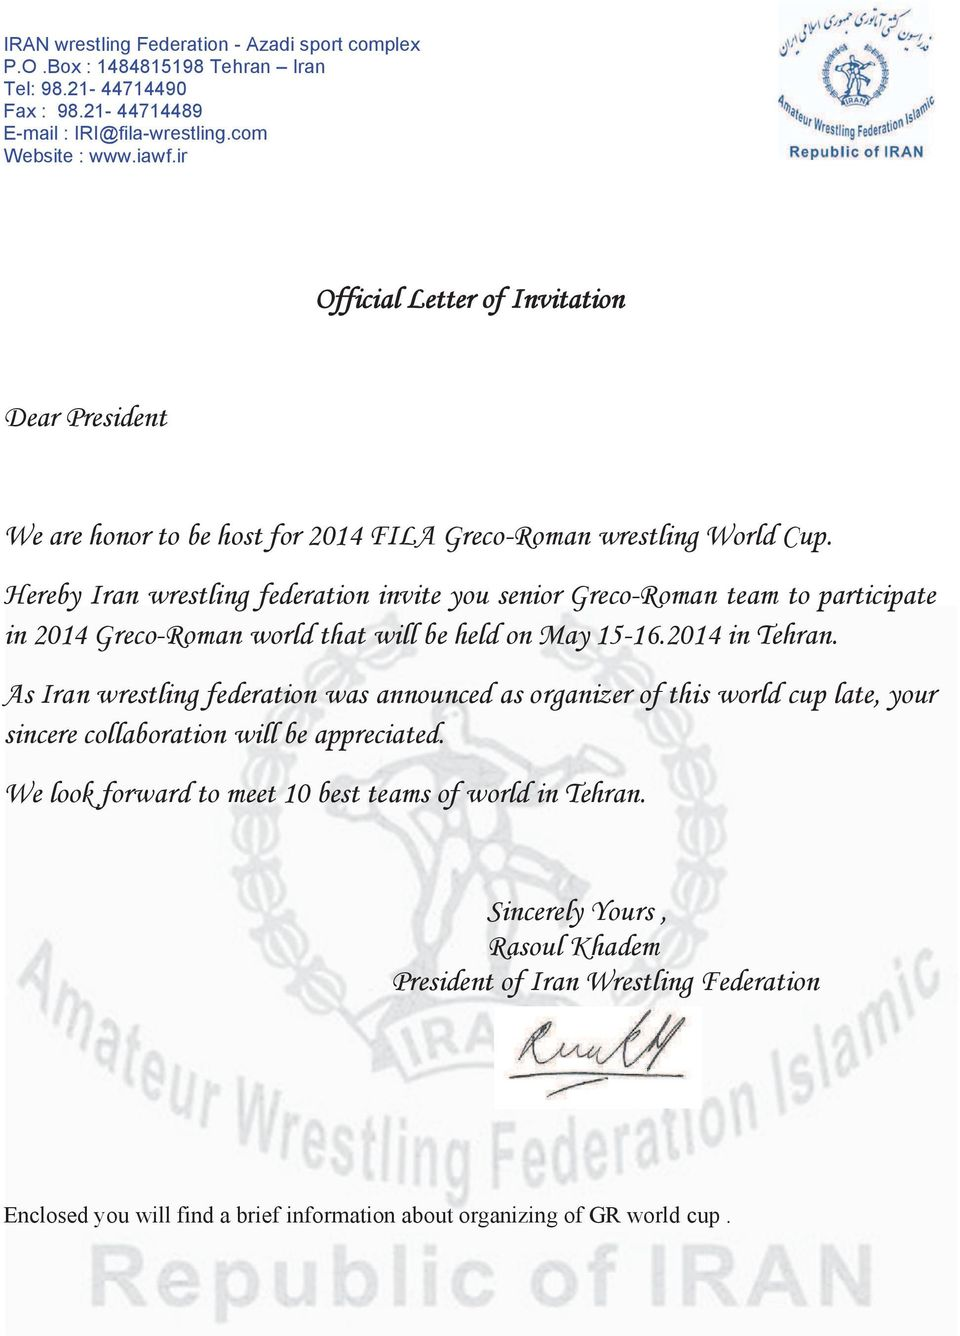 Hereby Iran wrestling federation invite you senior Greco-Roman team to participate in 2014 Greco-Roman world that will be held on May 15-16.2014 in Tehran.